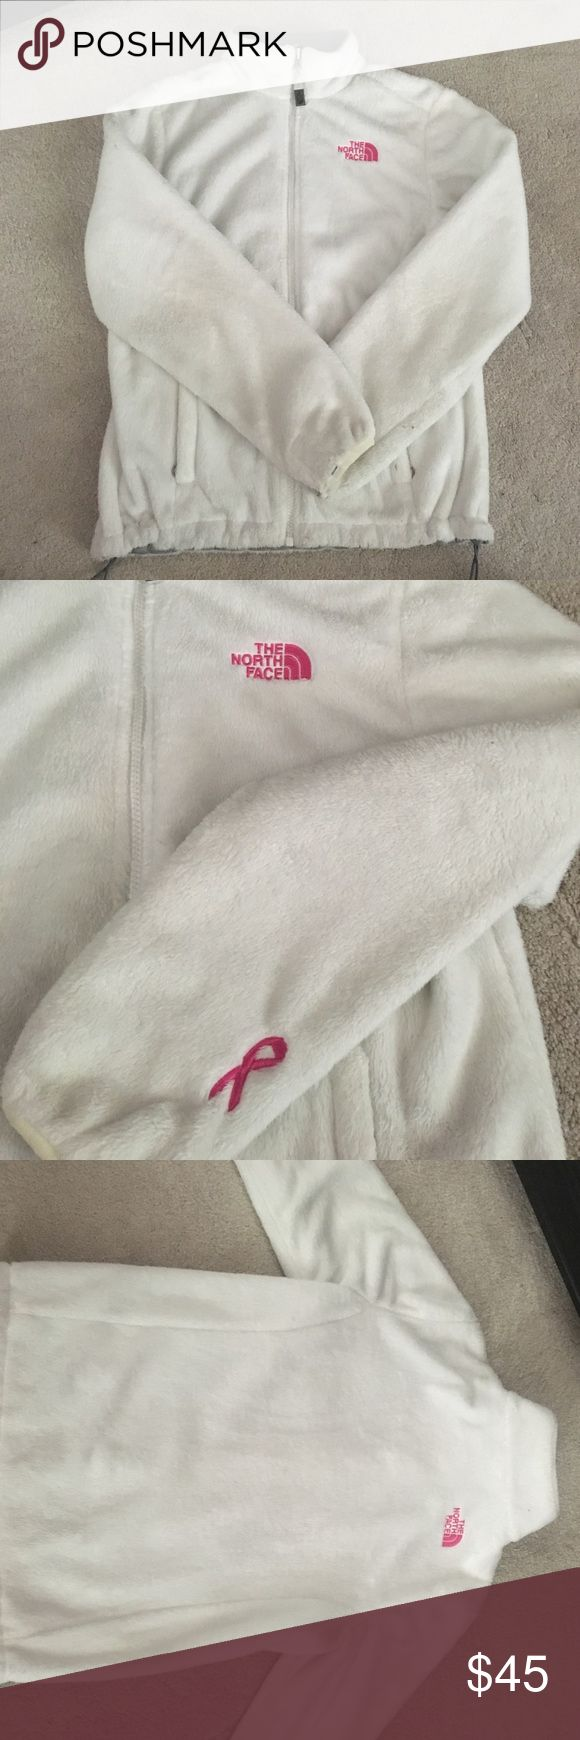 White North Face fleece jacket Breast Cancer Awareness North Face jacket 💕 White fleece with pink logo and ribbon on the arm. Size small. in good condition ! North Face Jackets & Coats